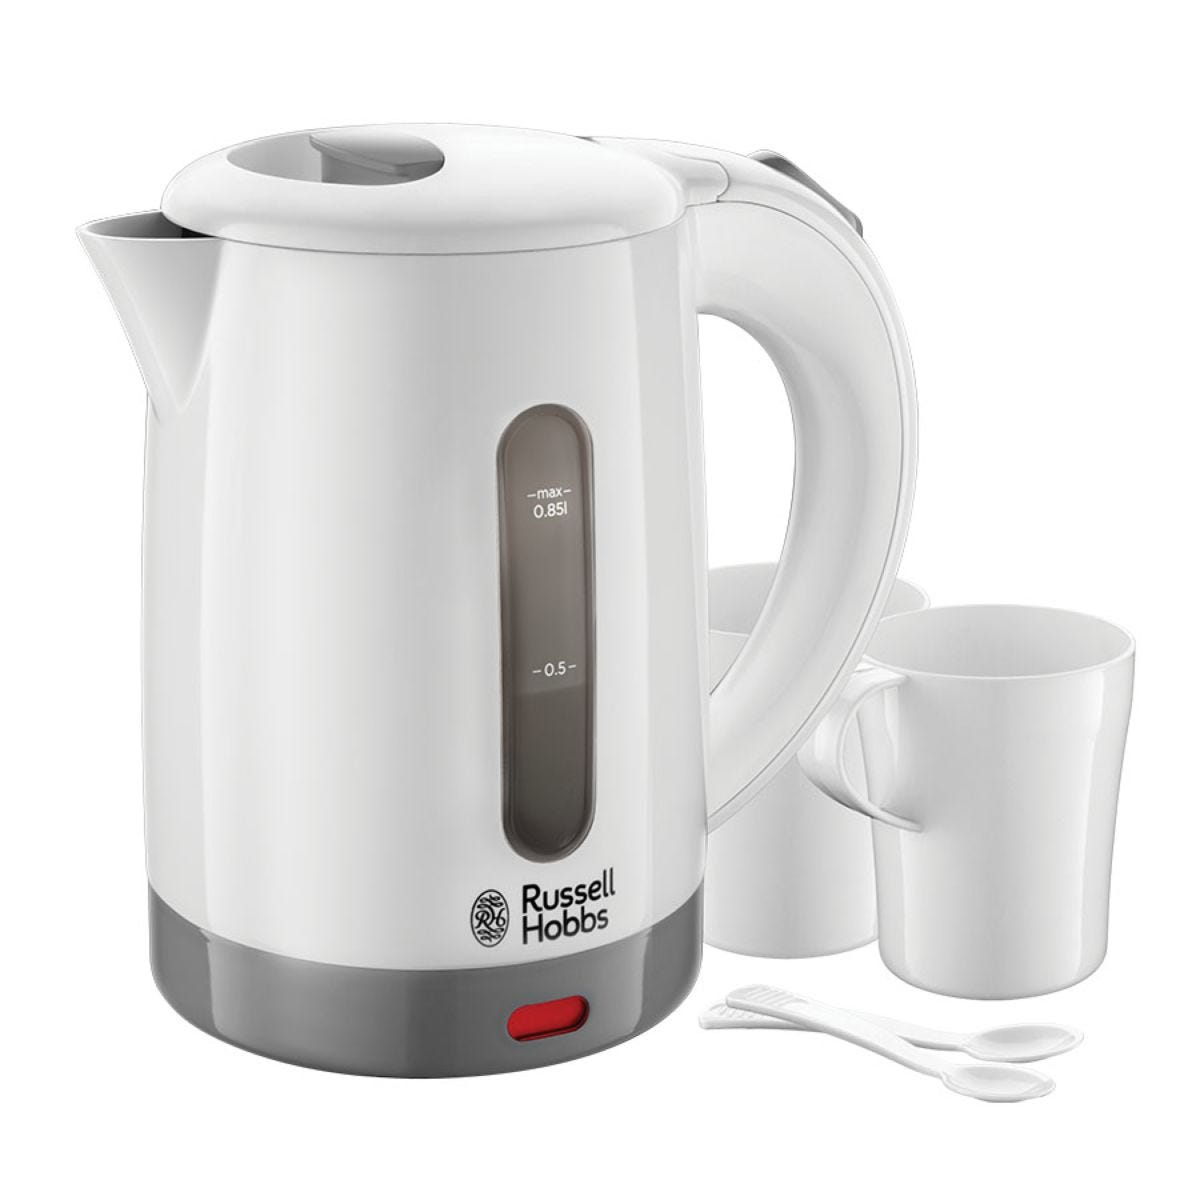 Russell Hobbs 23840 Compact 1000W Travel Kettle - White